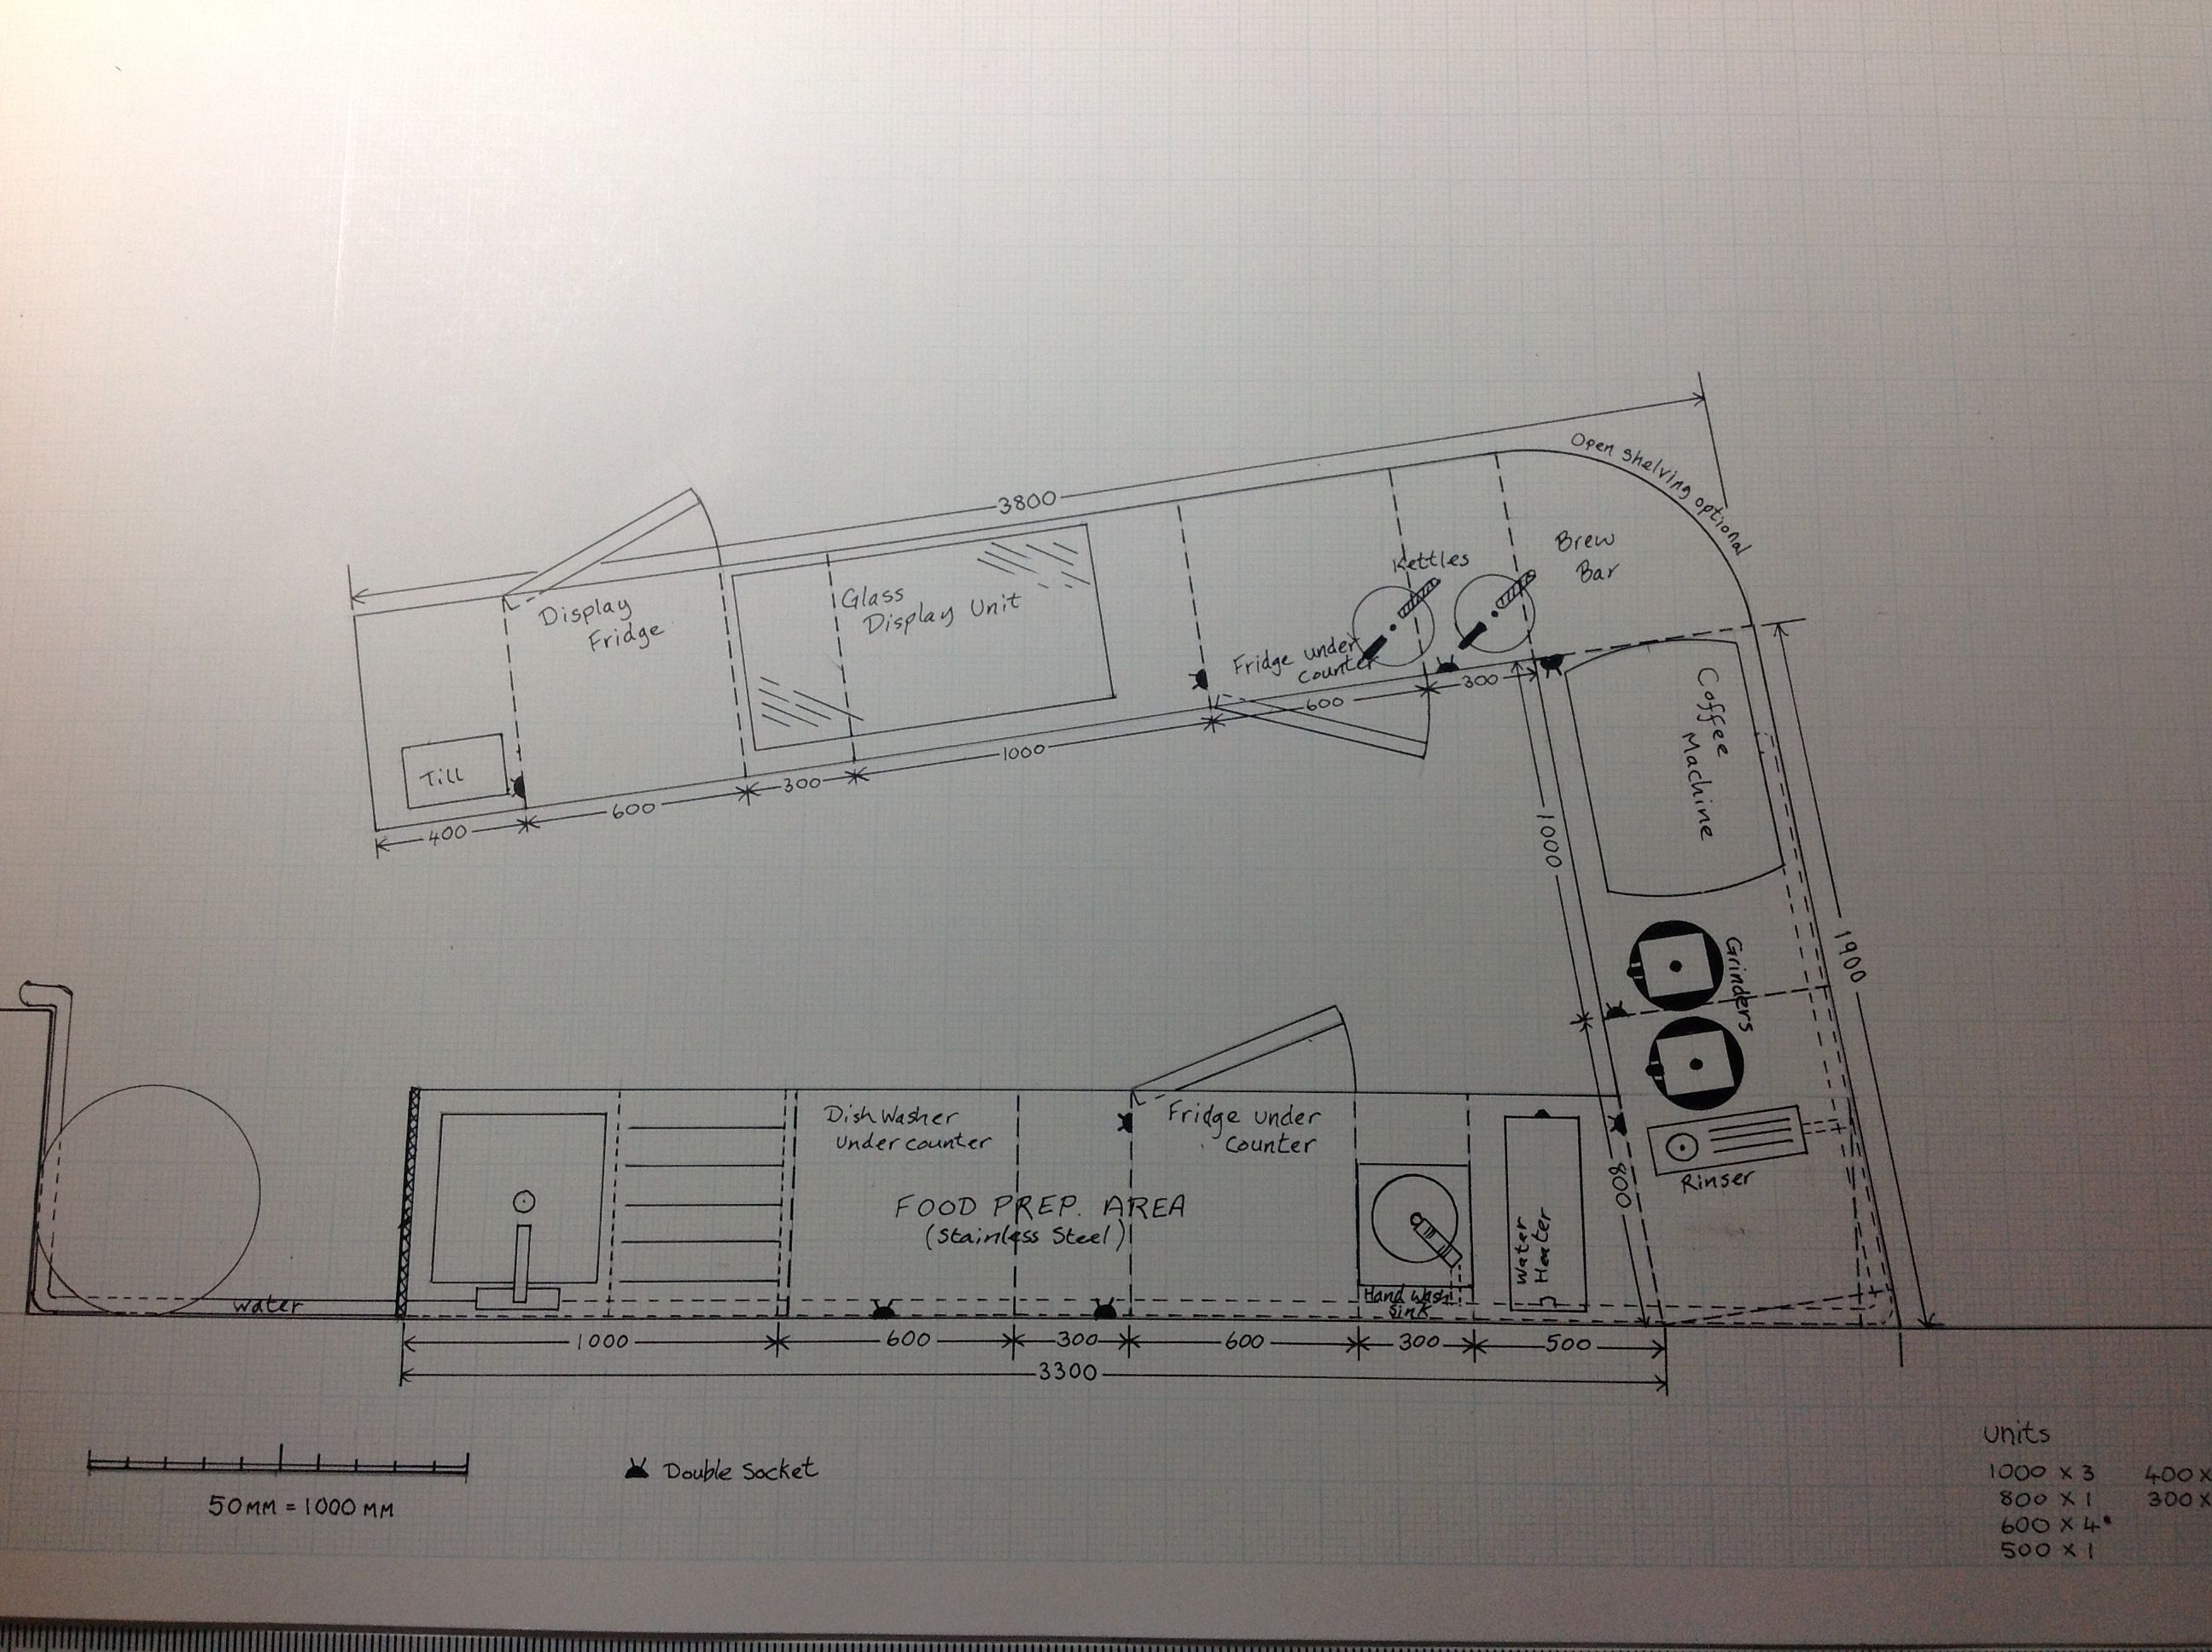 Latest plan of counter area